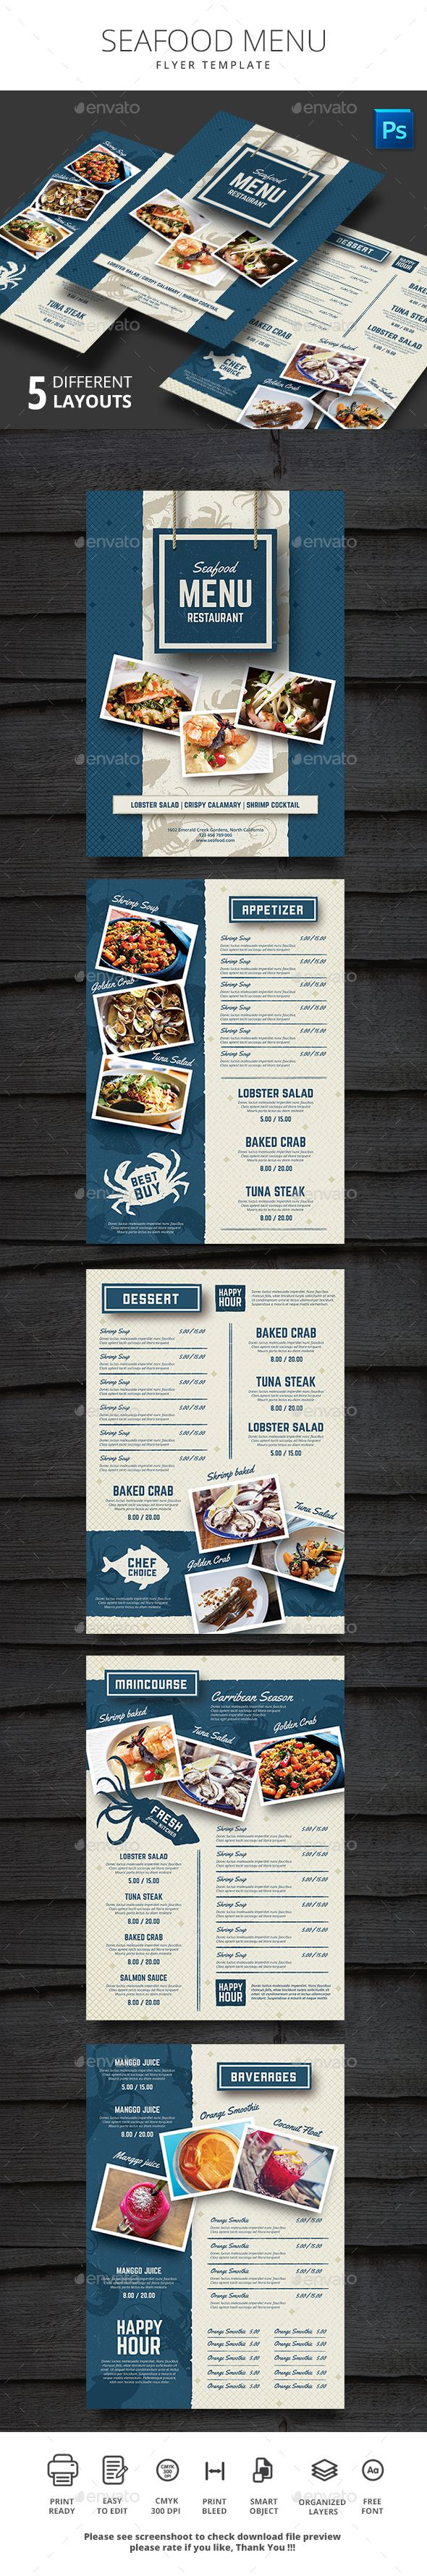 Seafood Restaurant Menu #photoshop #psd #octopus #210x297 • Download ➝ https://graphicriver.net/item/seafood-restauran-menu/18706100?ref=pxcr